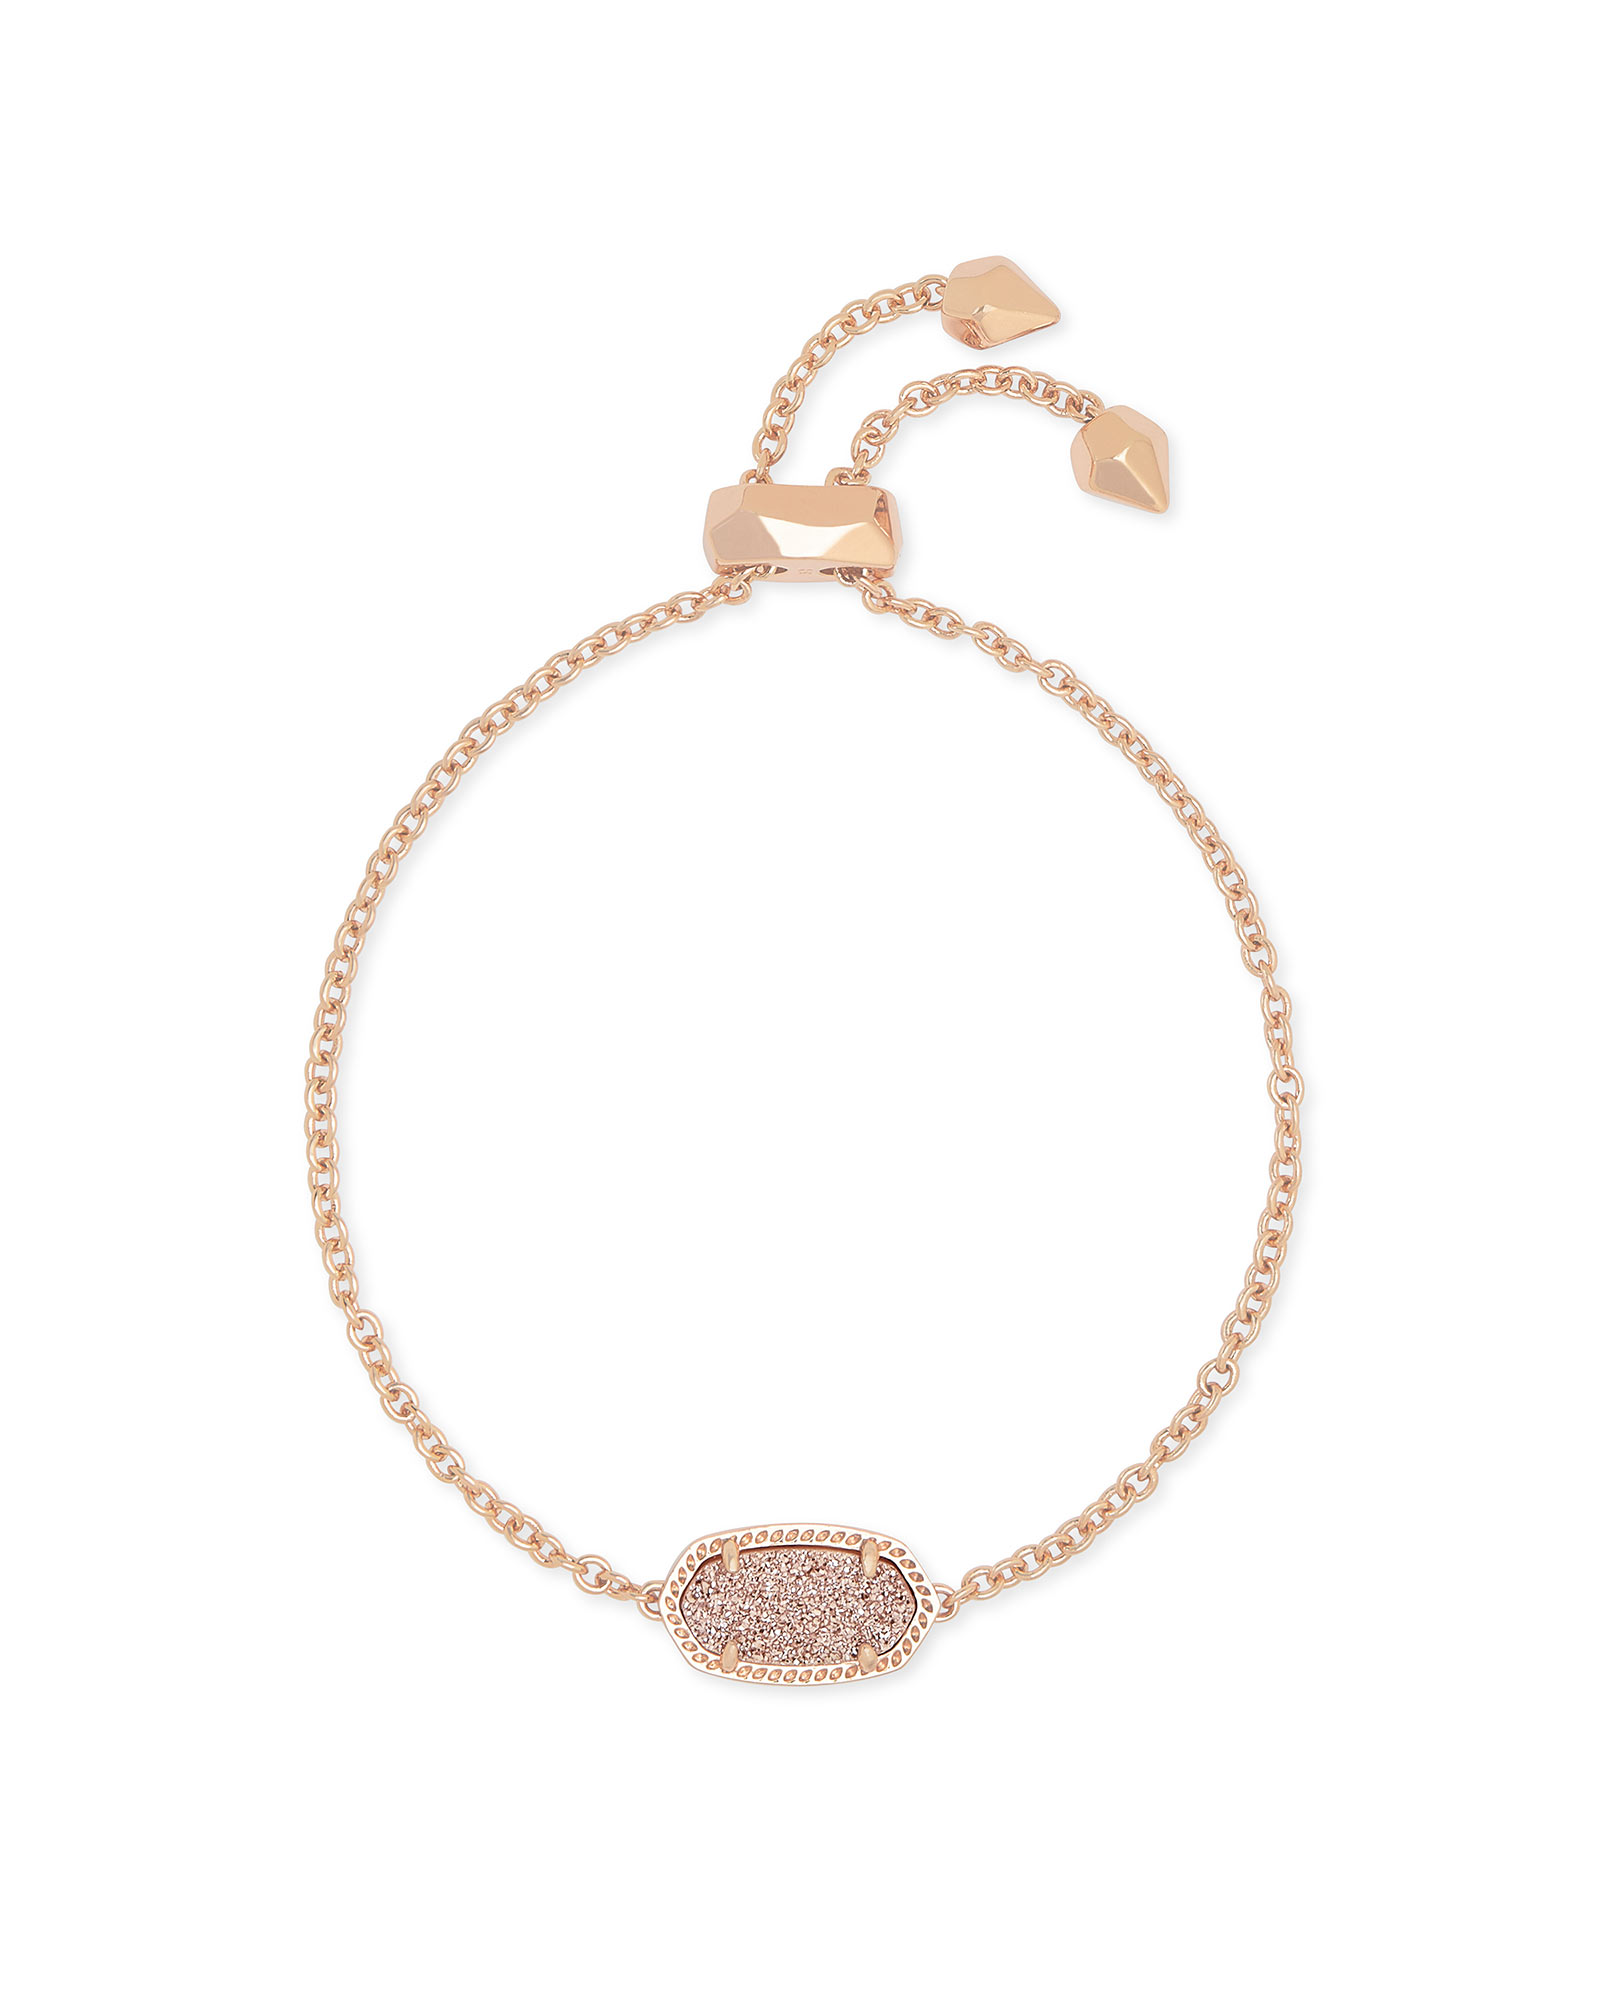 Elaina Rose Gold Adjustable Chain Bracelet in Sand Drusy